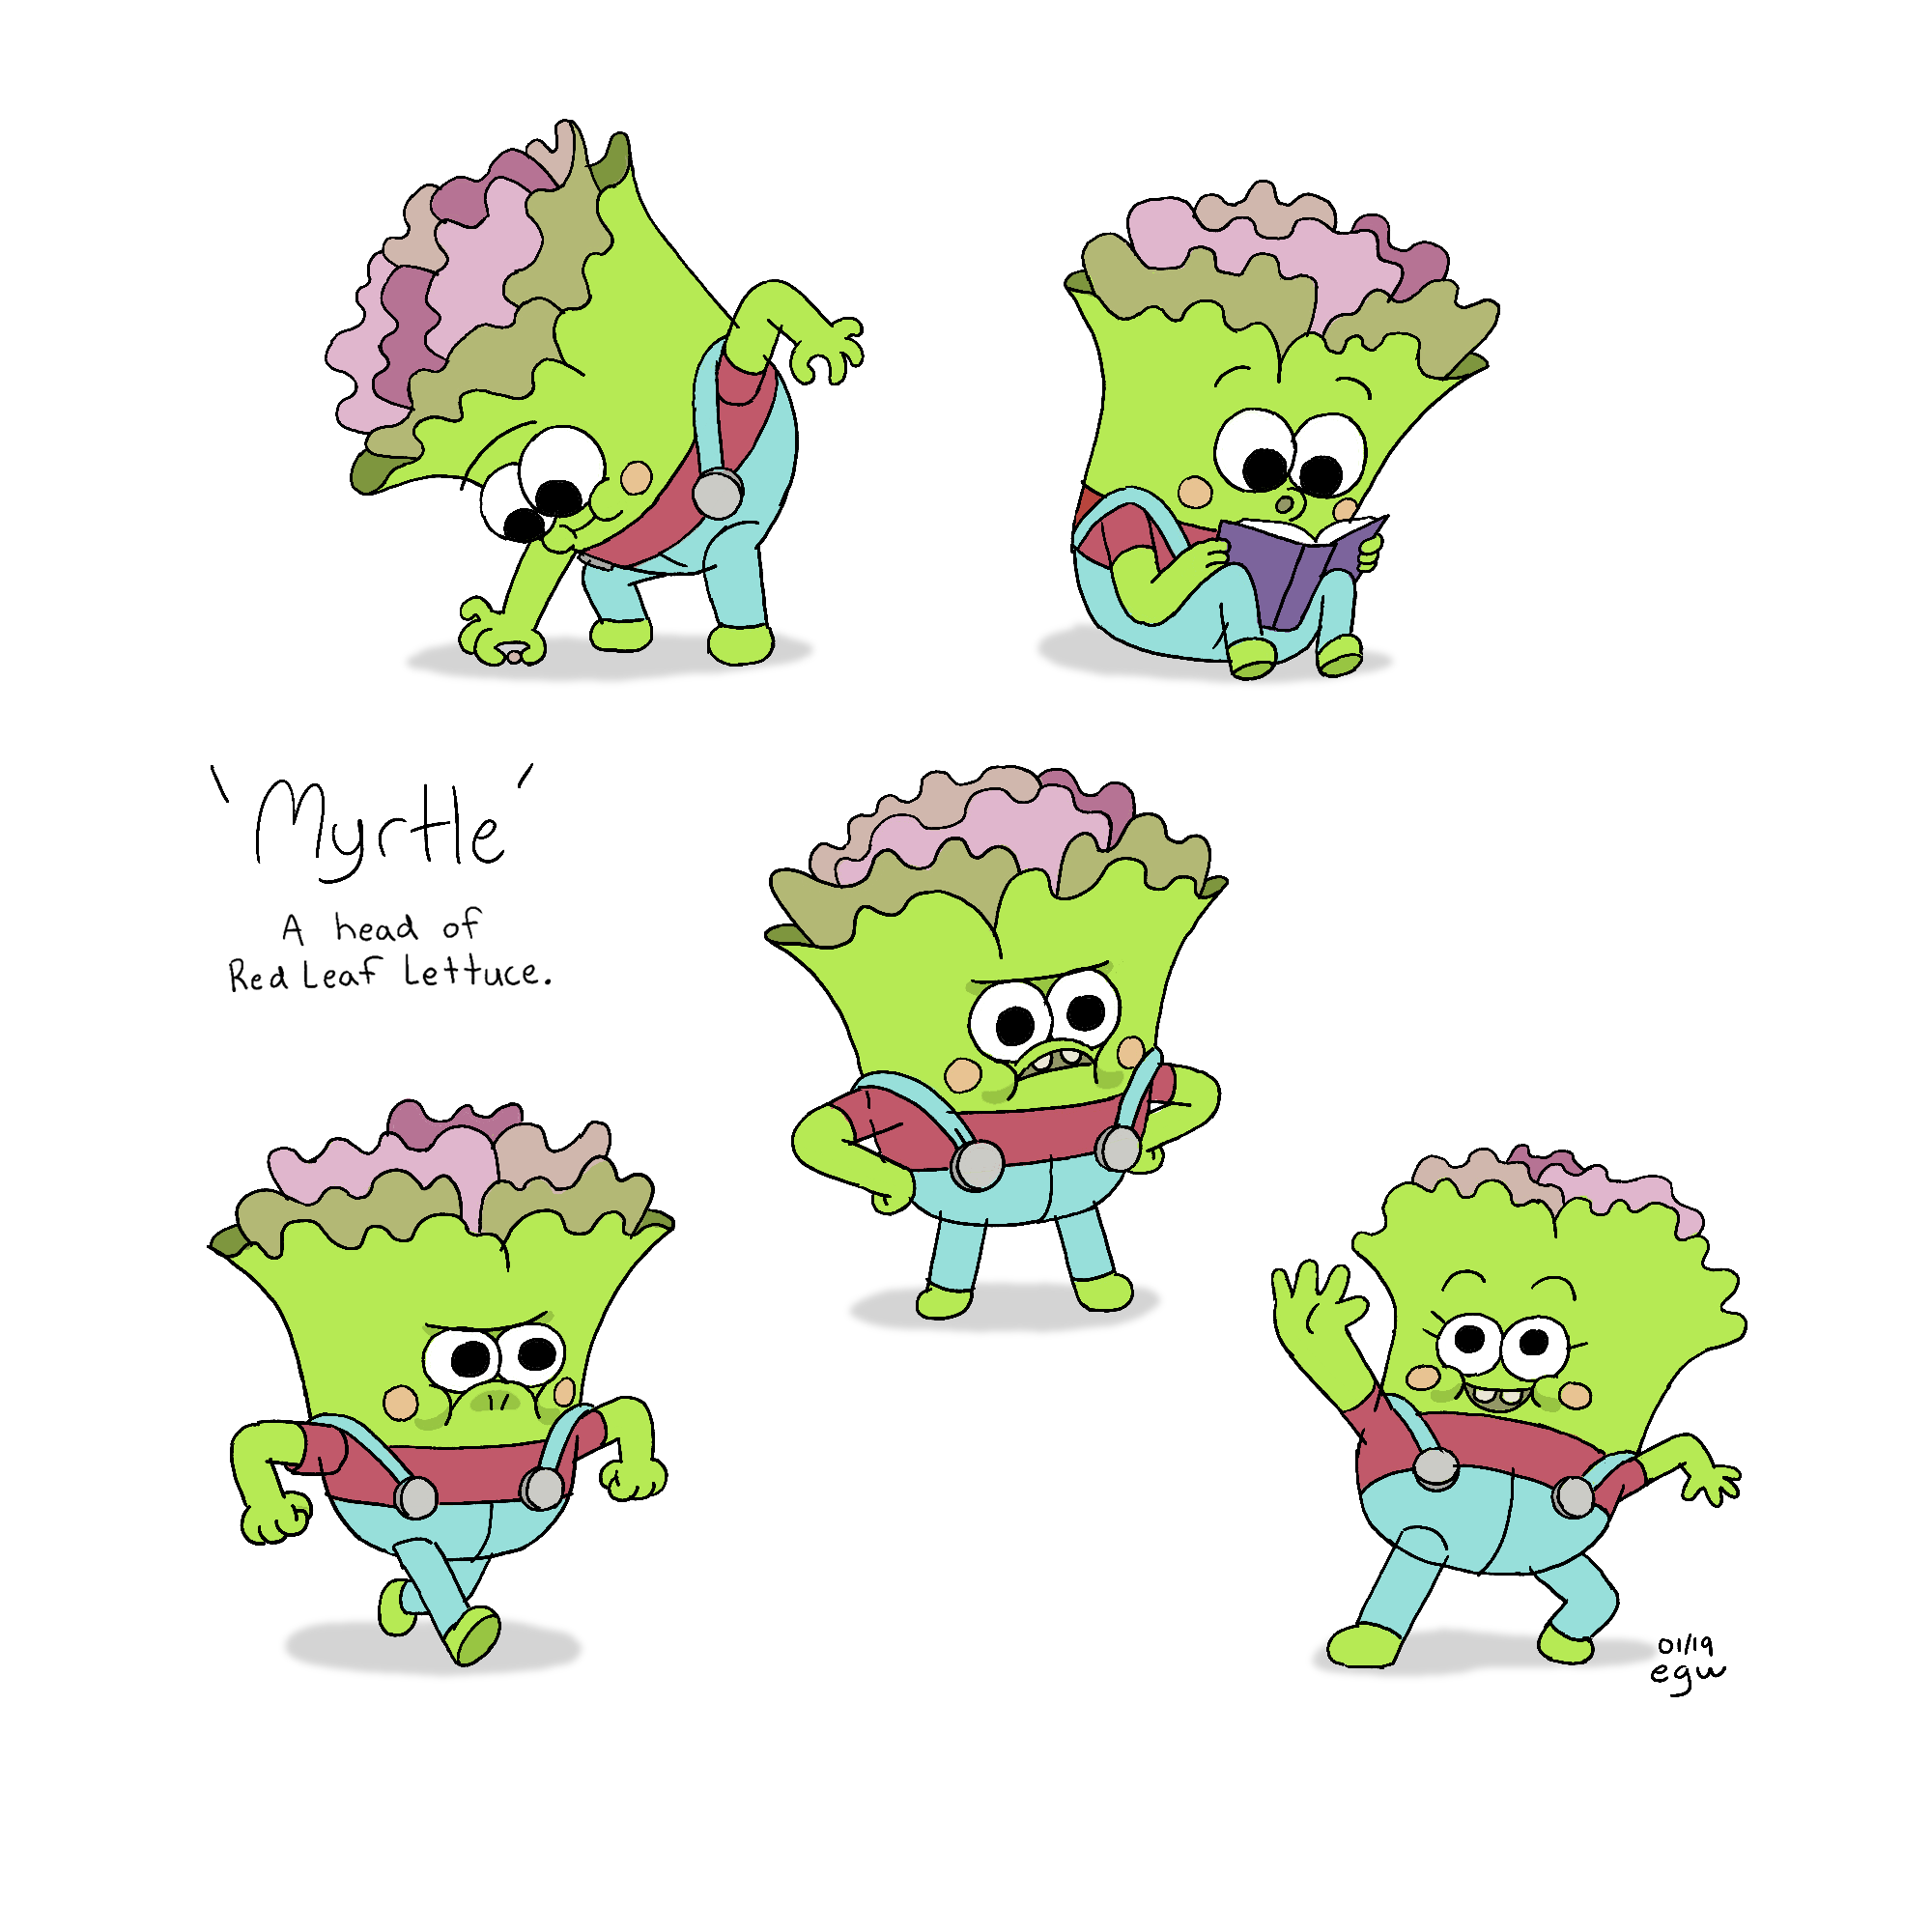 myrtle_poses.png